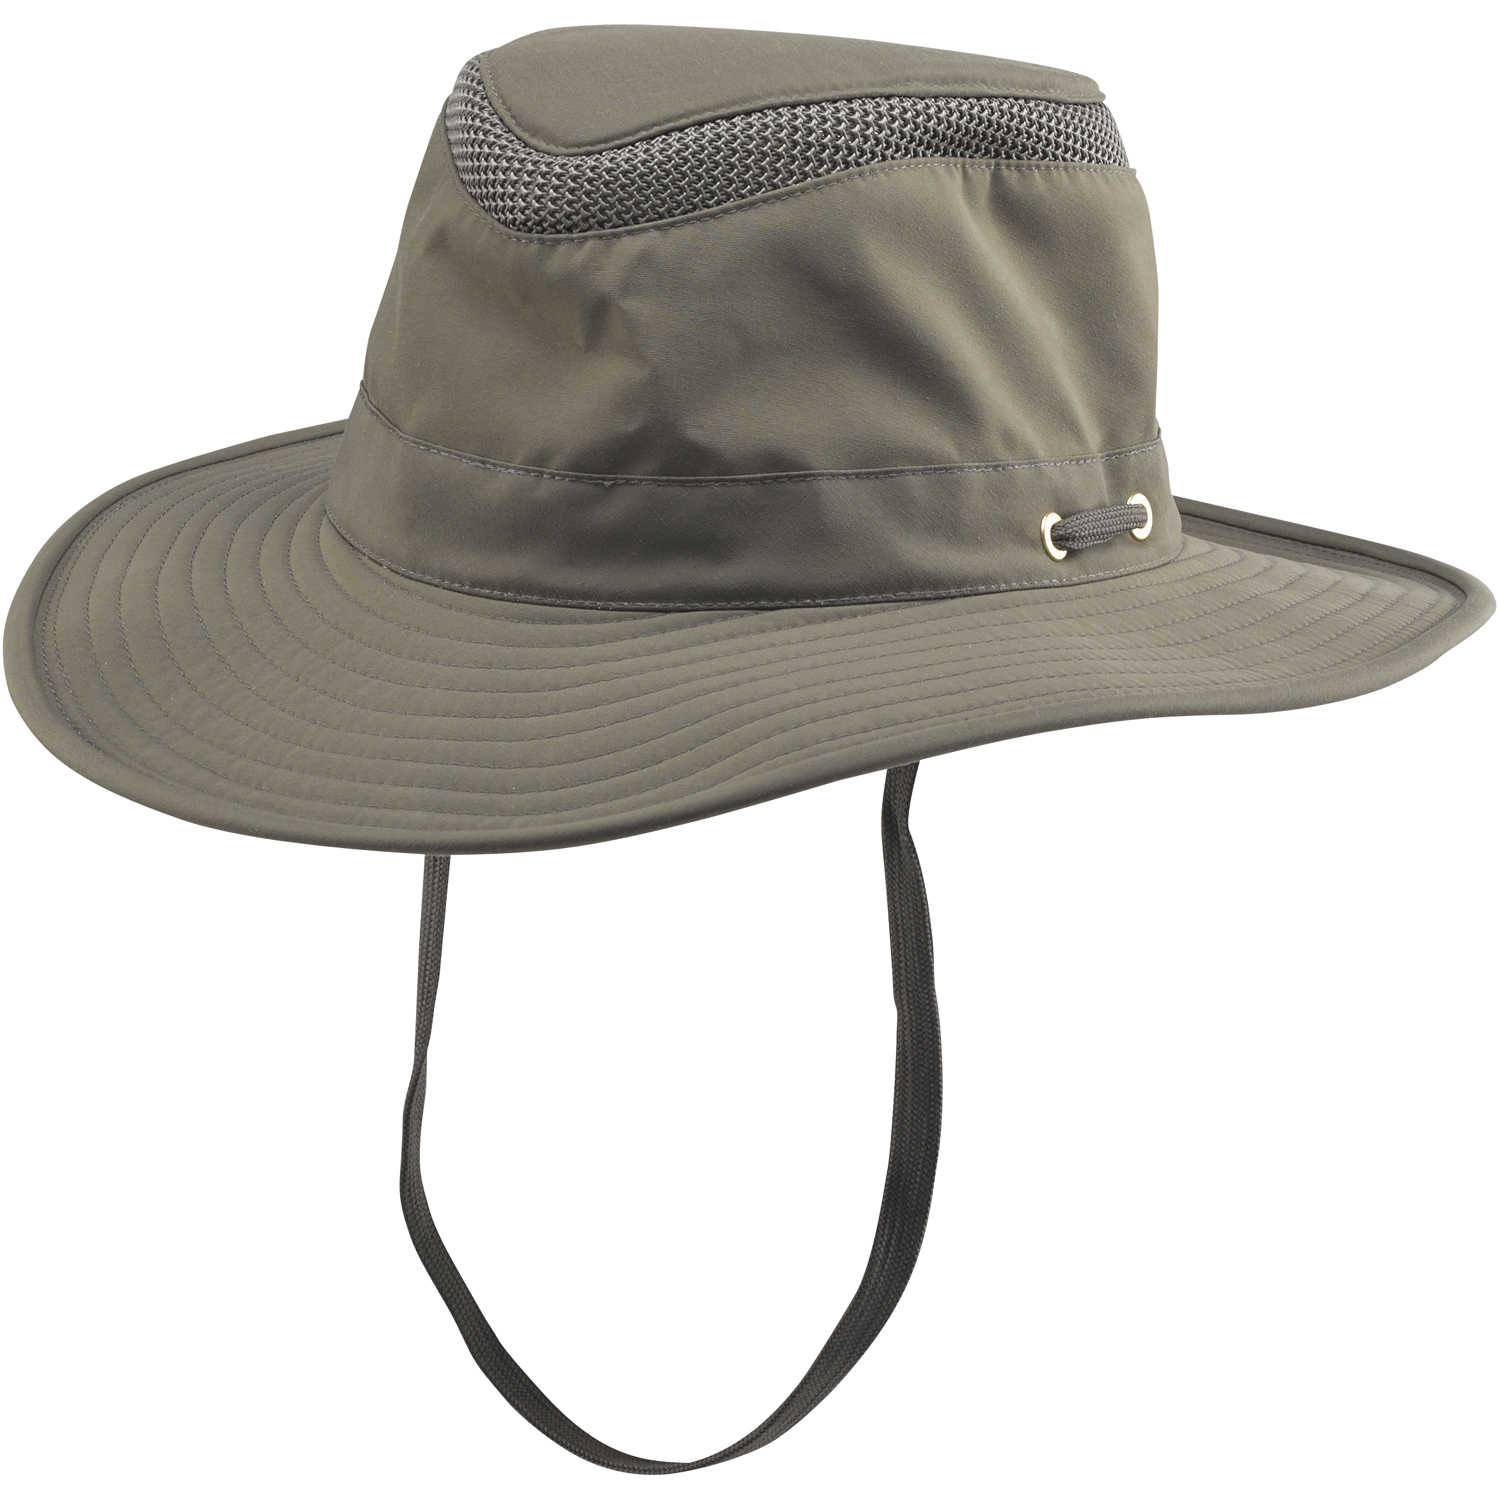 f9abde4db13 Image is loading Tilley-LTM6-Airflo-Hat-Olive-Size-7-5-